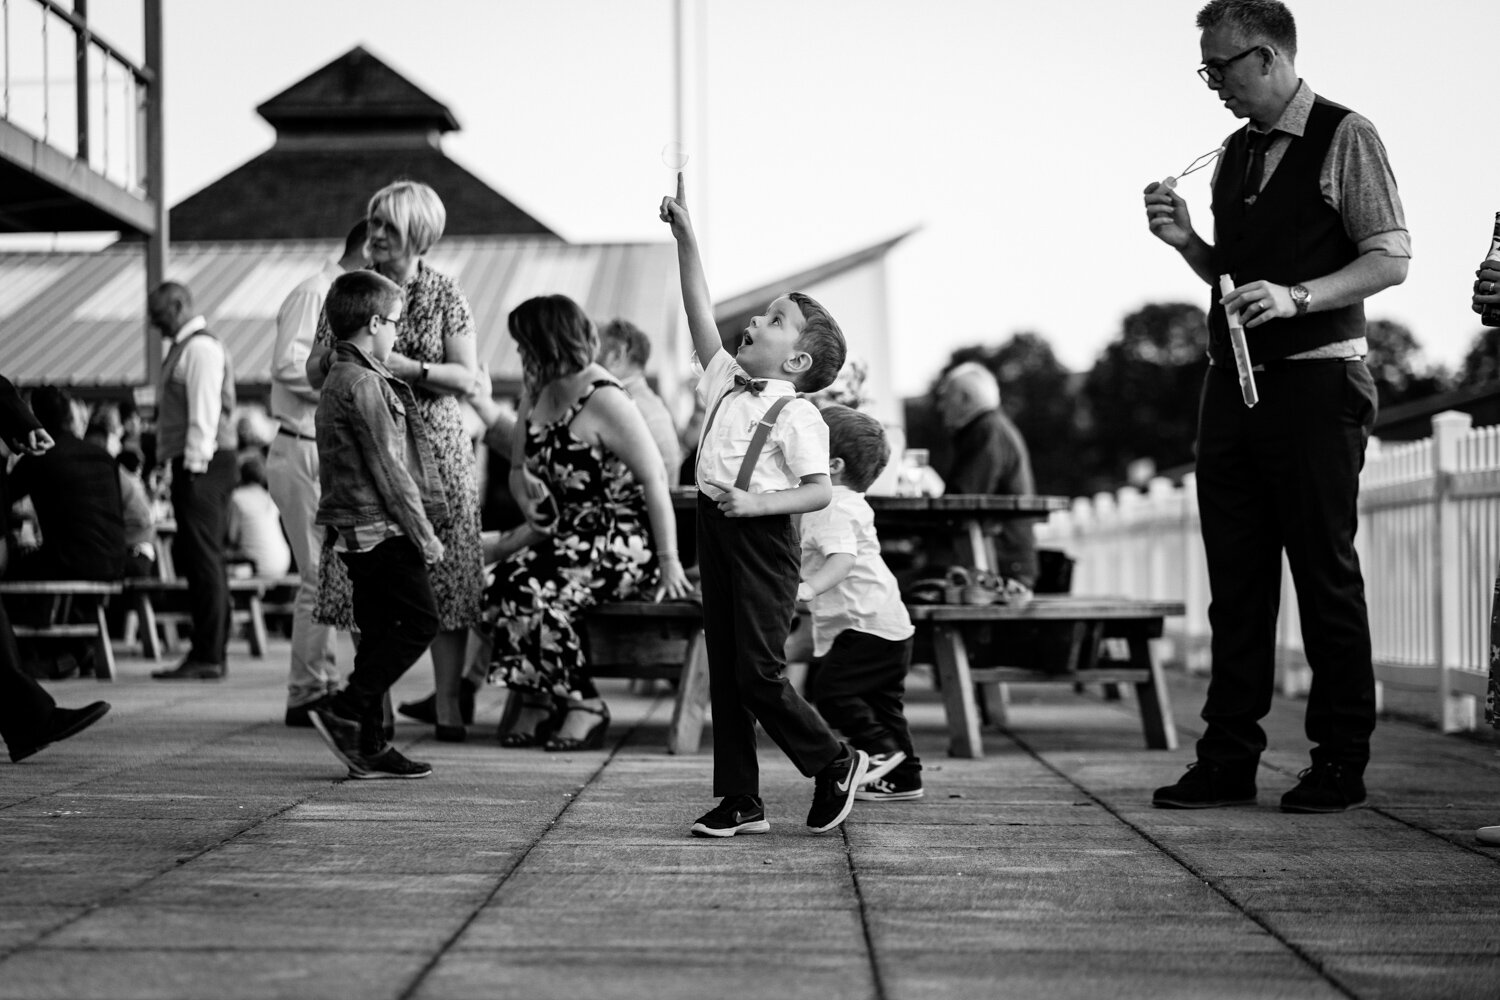 Children playing at wedding popping bubbles